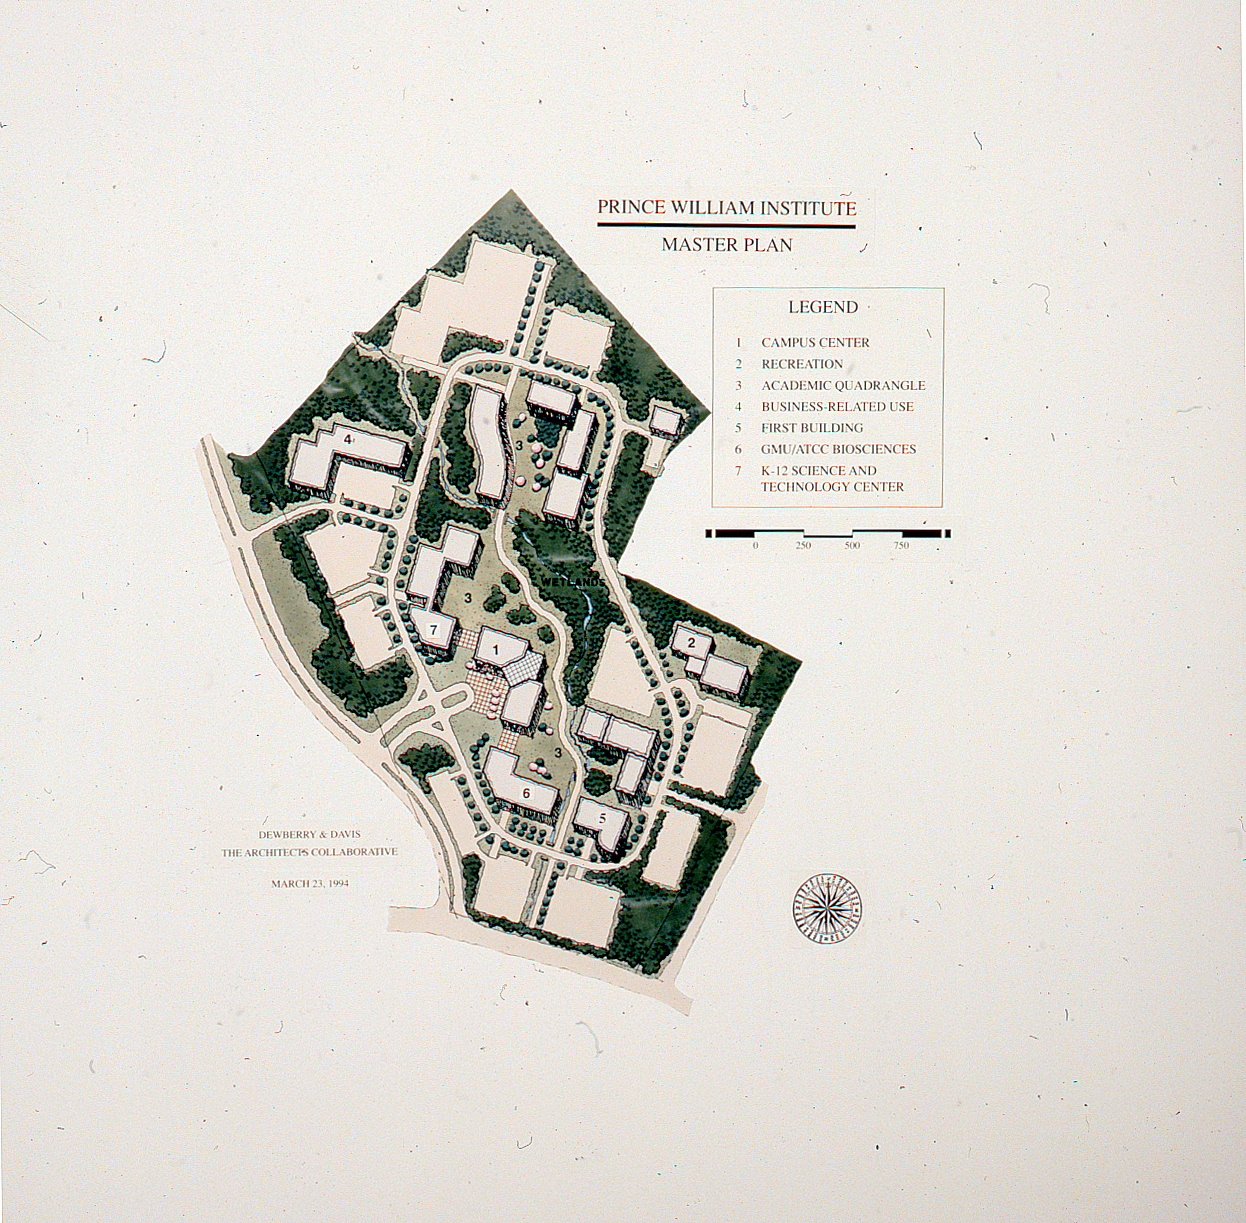 Prince William Institute, Master Plan, March 23, 1994